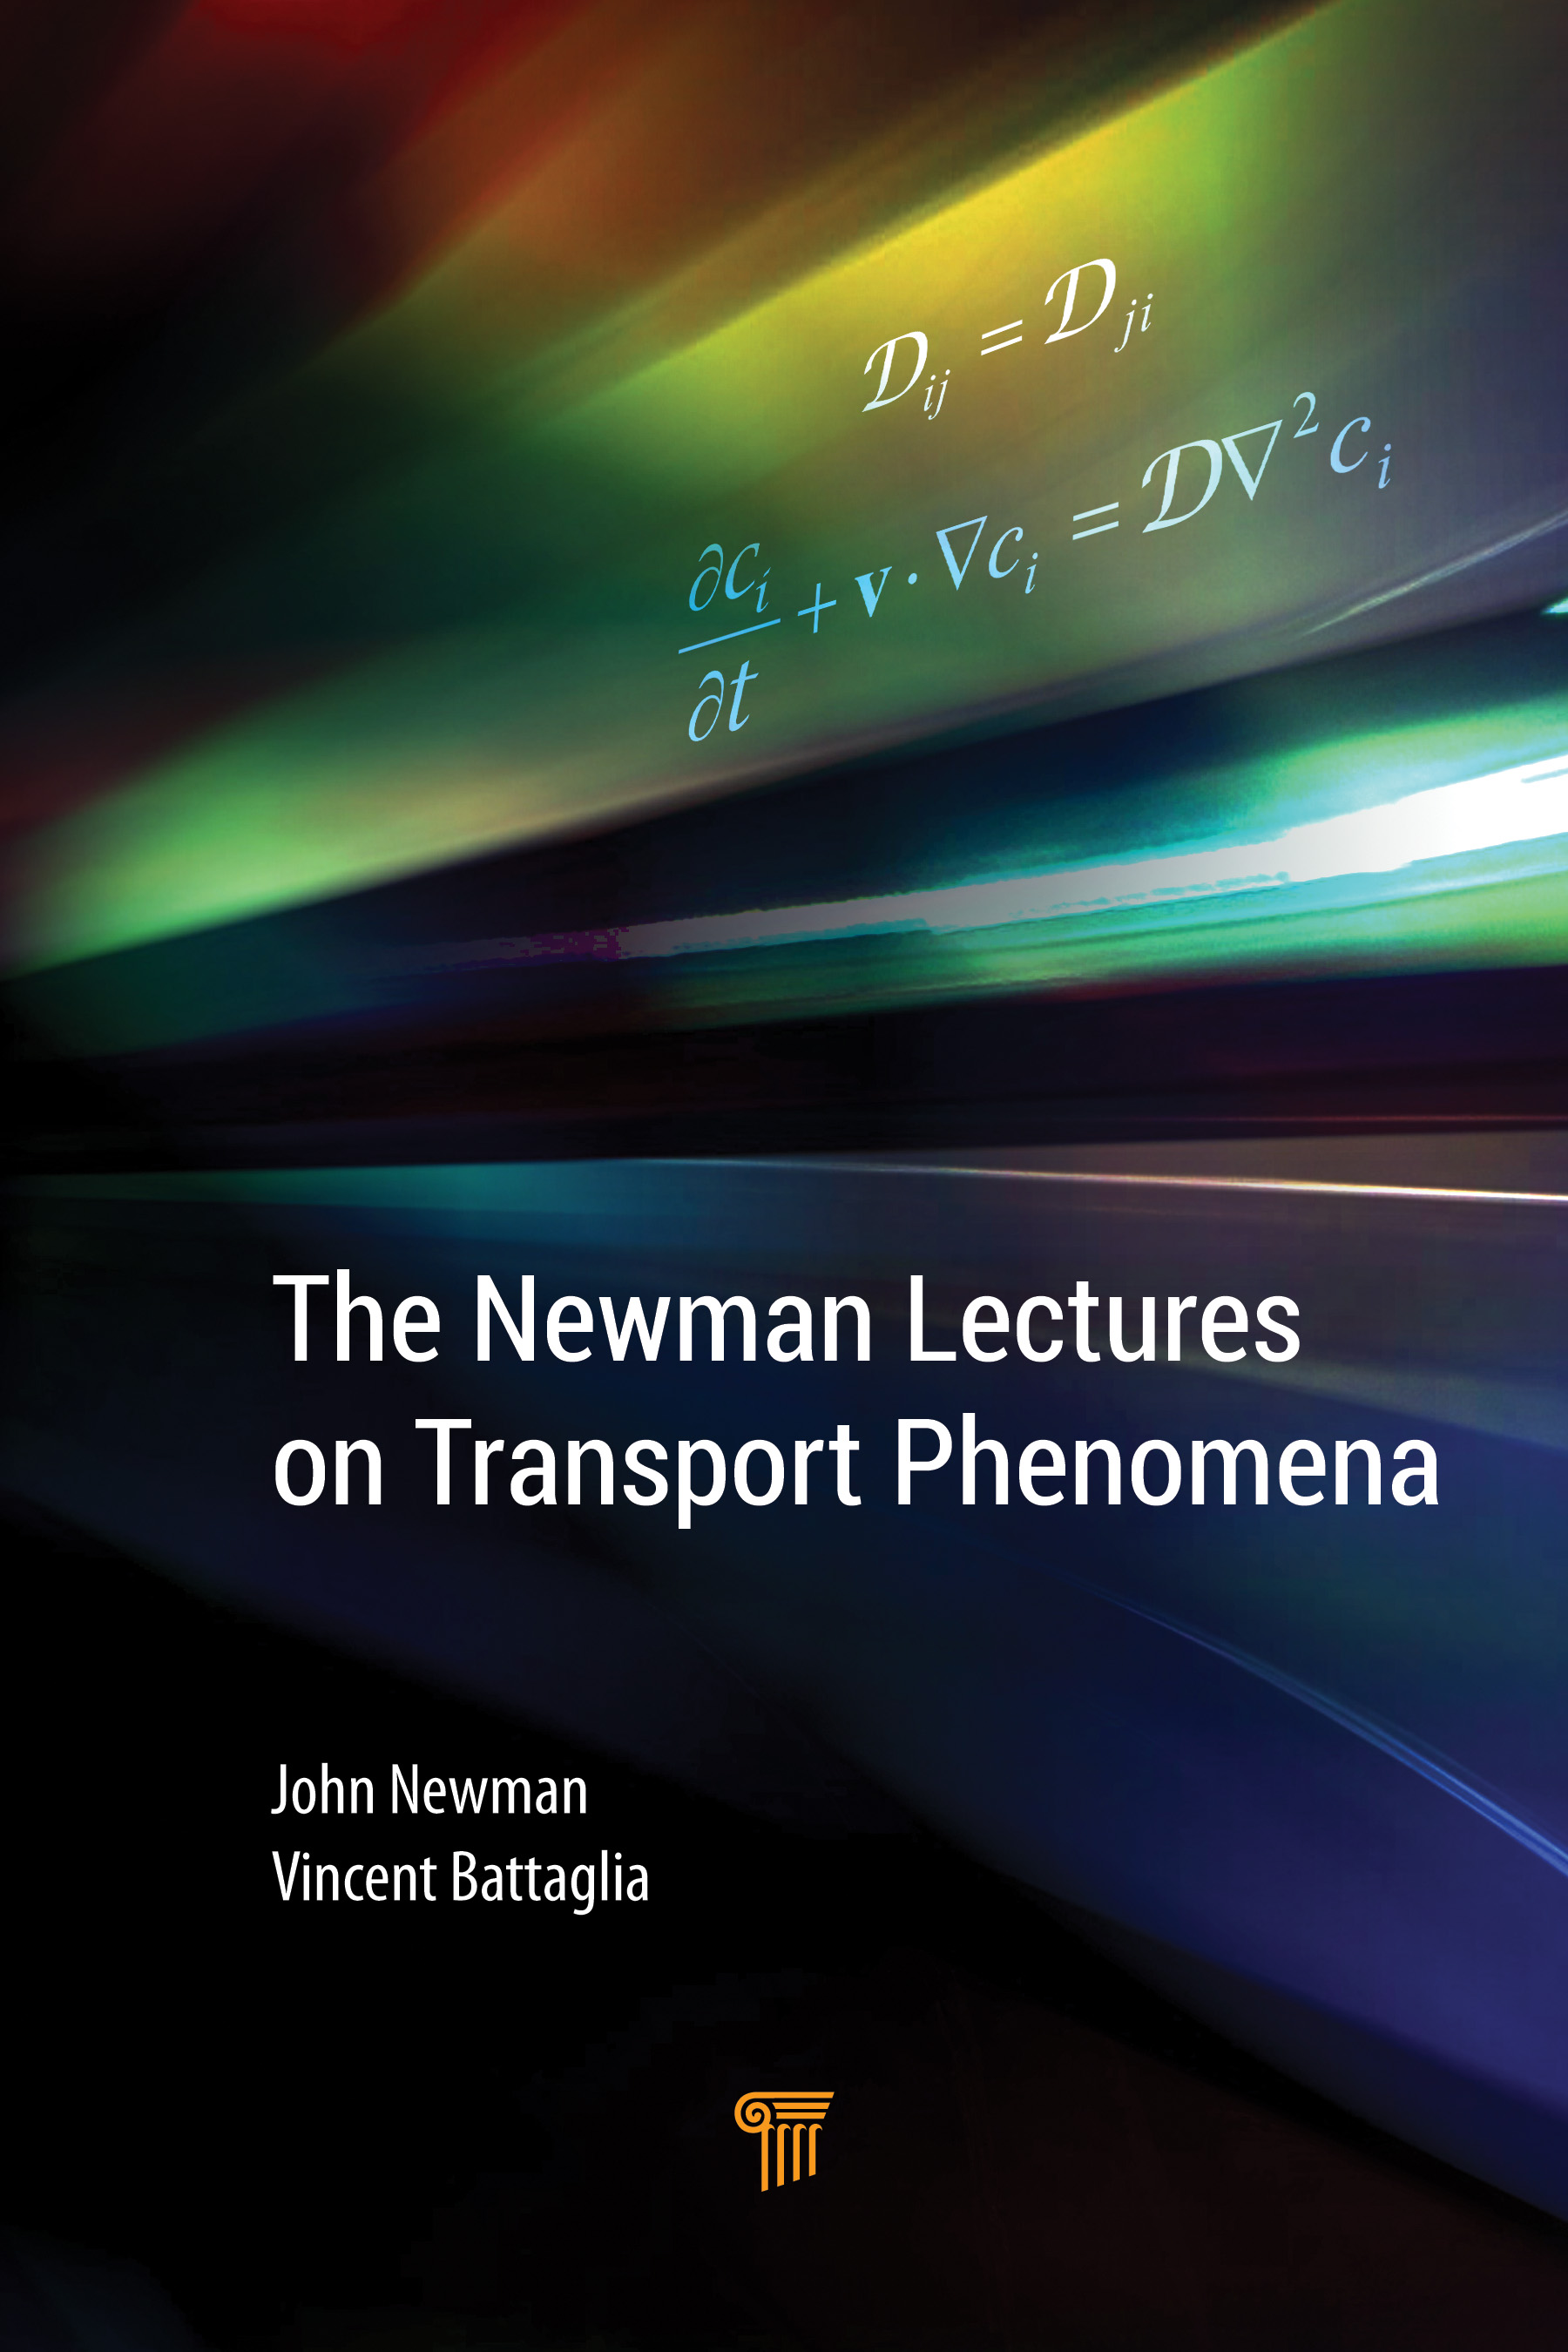 The Newman Lectures on Transport Phenomena book cover